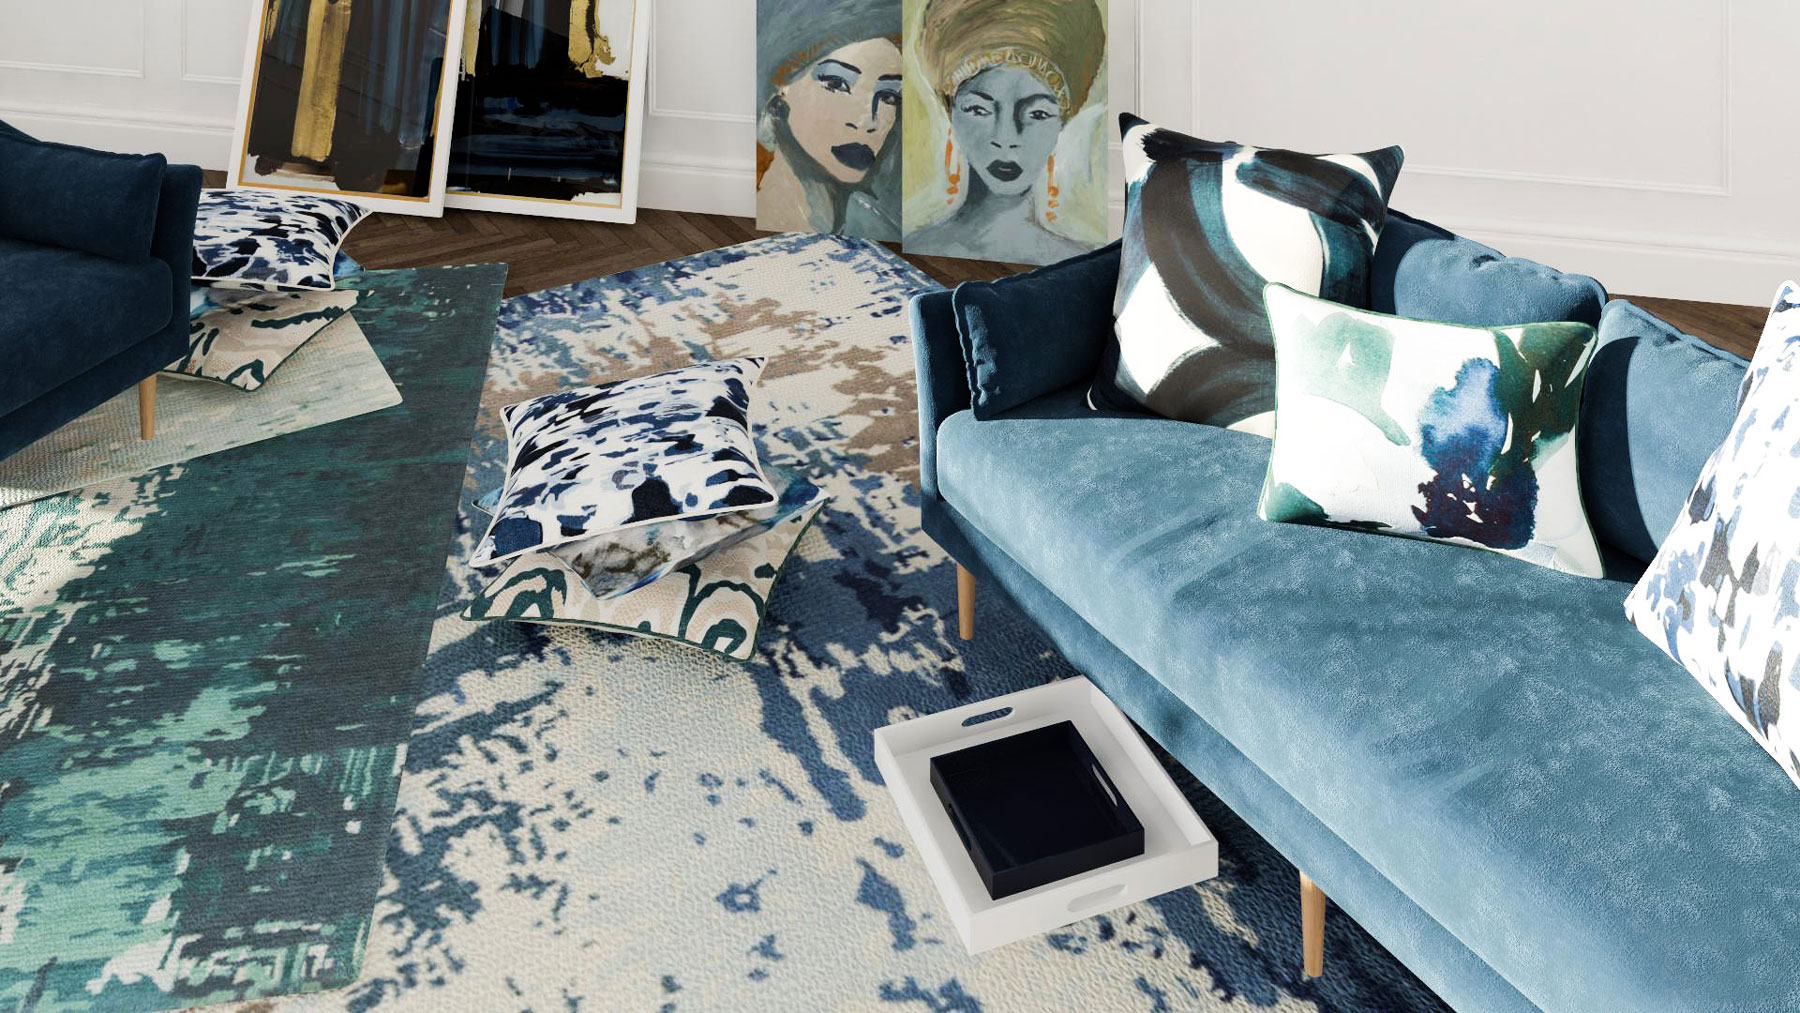 2019 Design Trends from Modsy - Paint Strokes